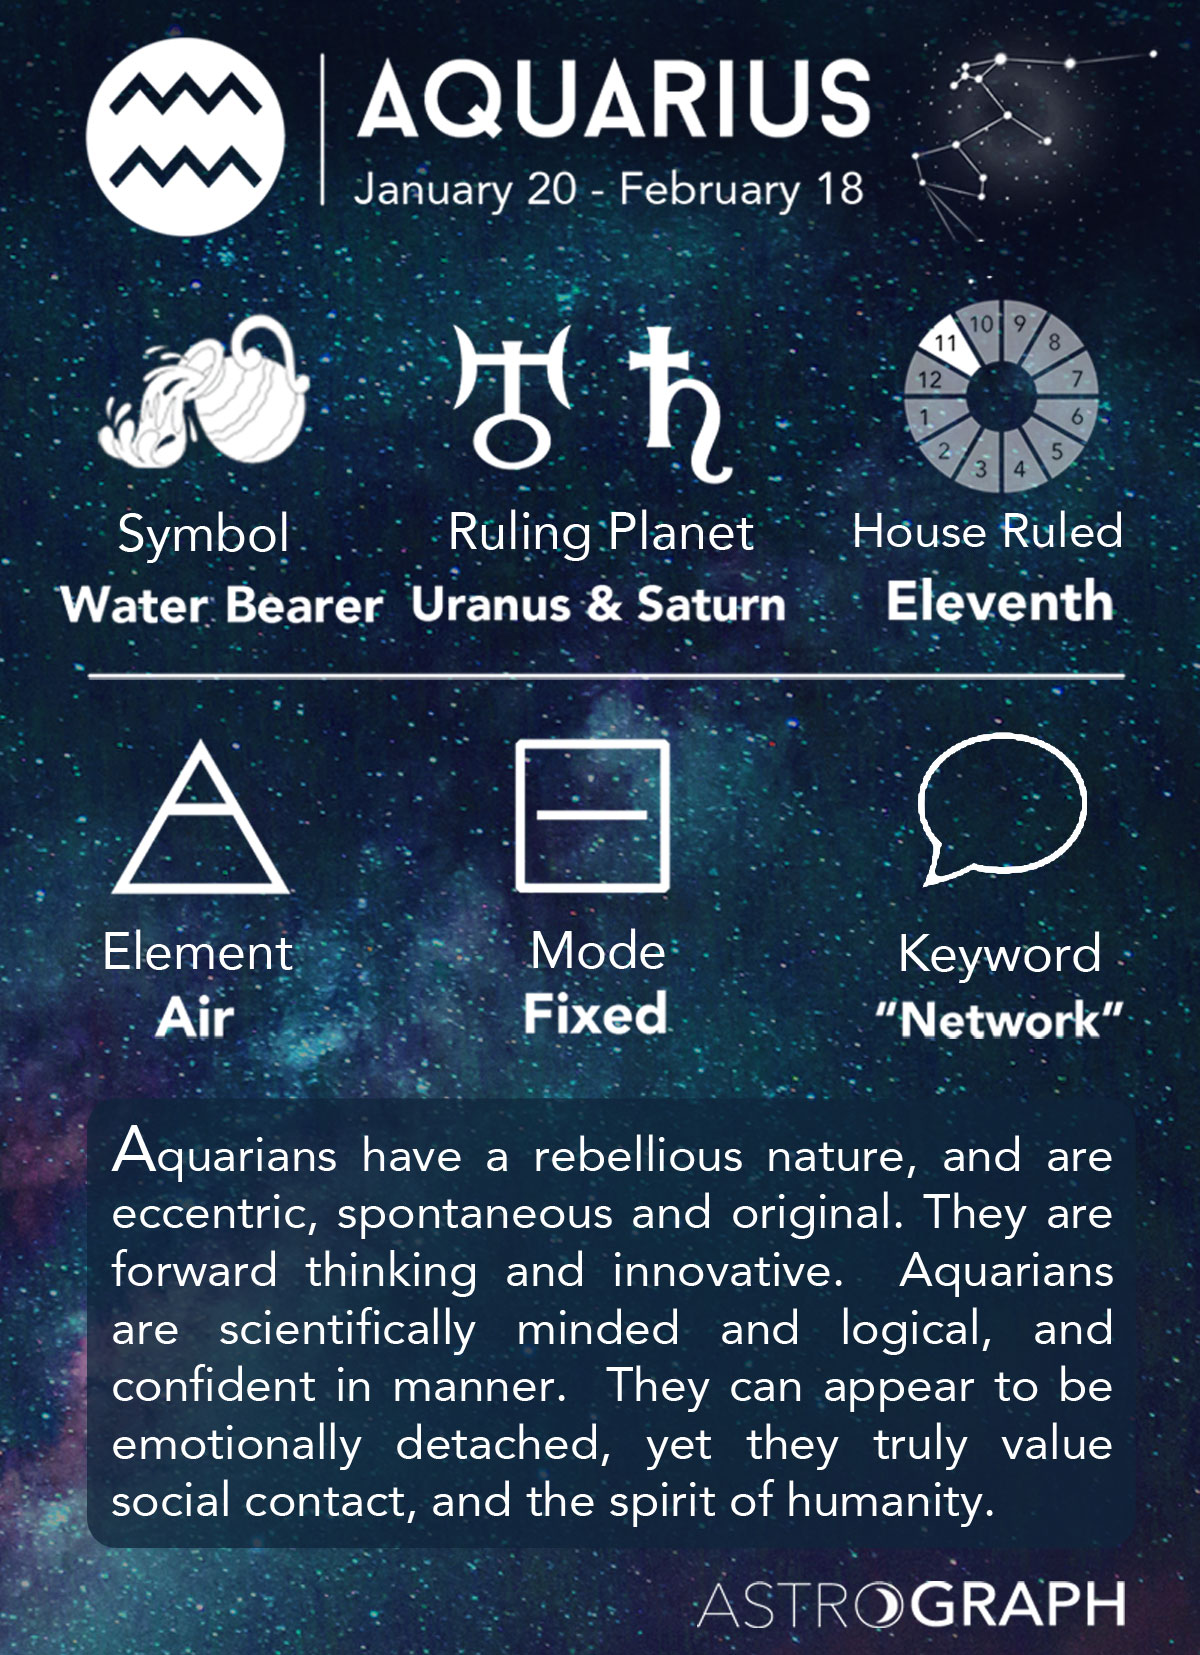 Aquarius Sign Traits Overview